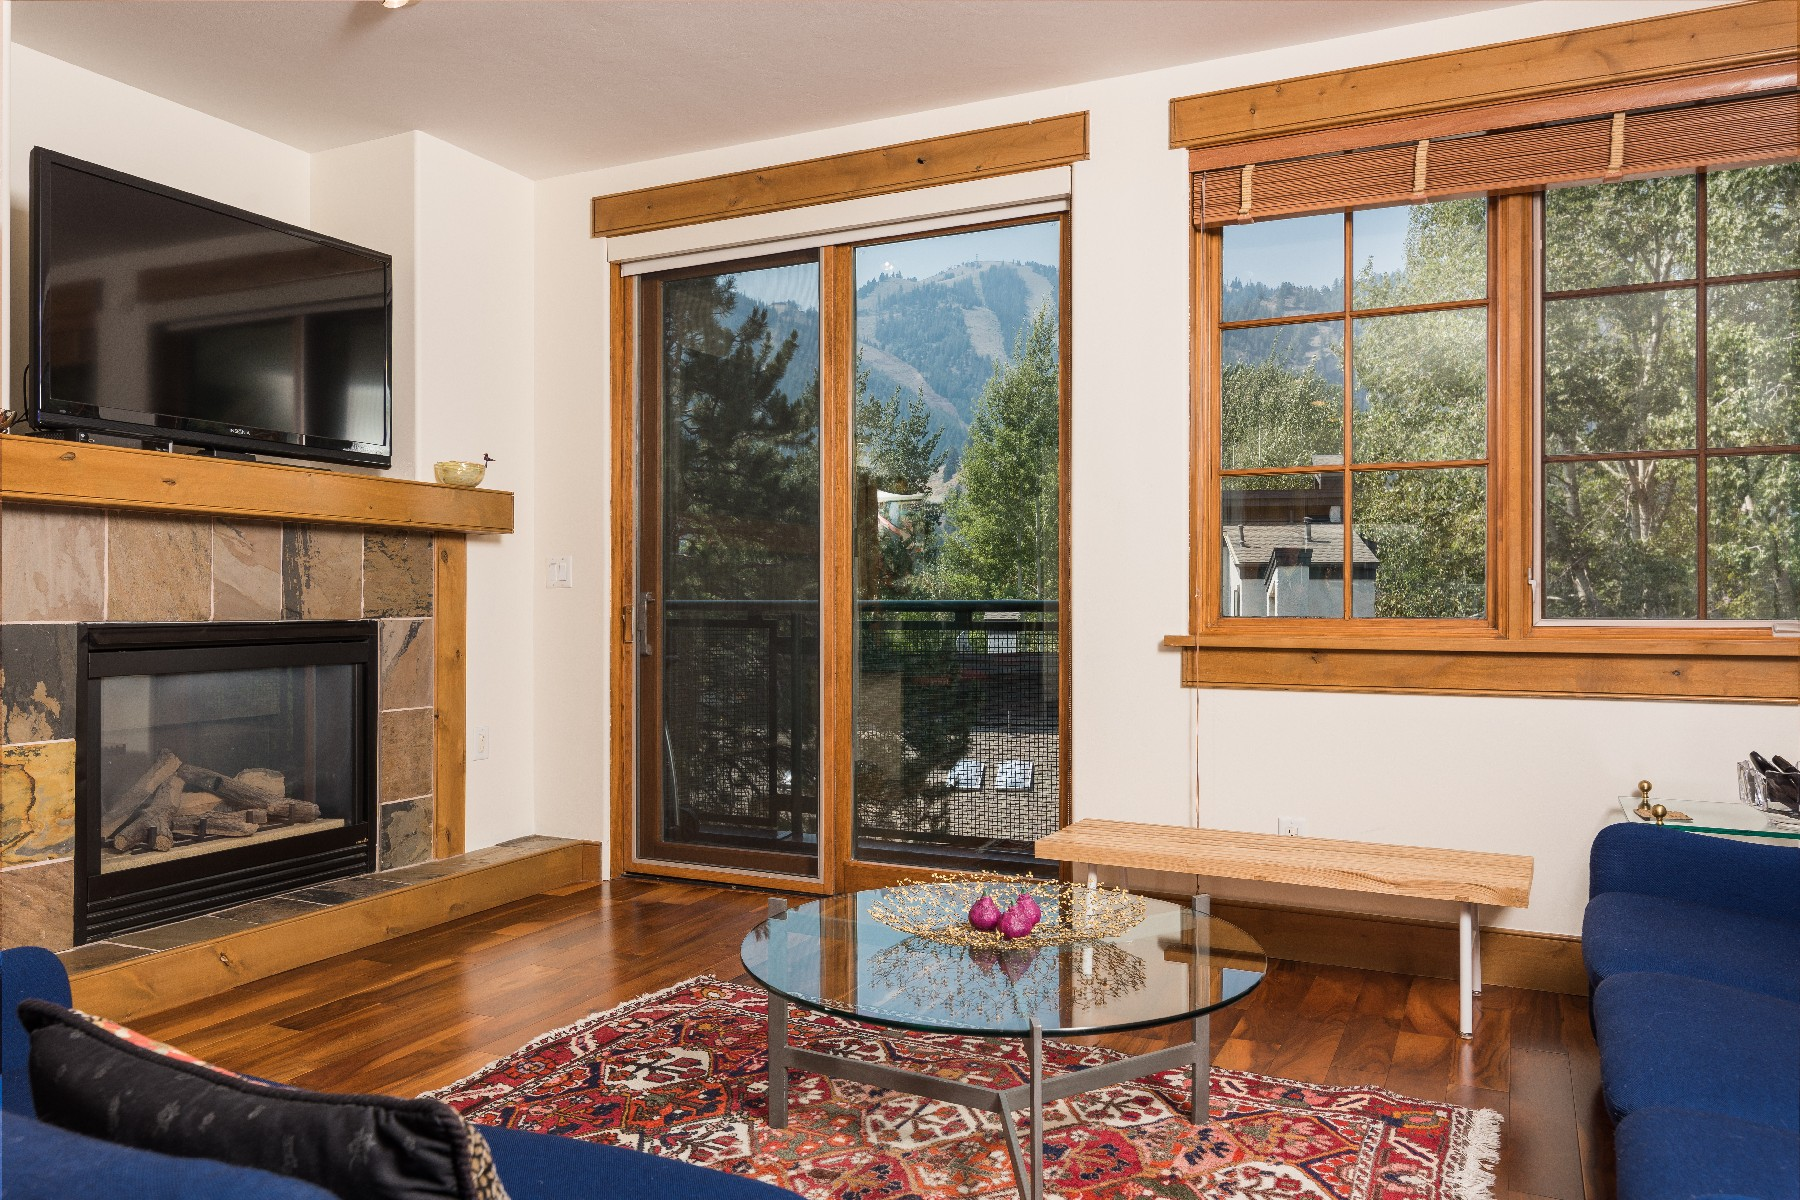 Additional photo for property listing at Wake Up To Baldy Views 601 S Main St #14 Ketchum, Idaho 83340 États-Unis